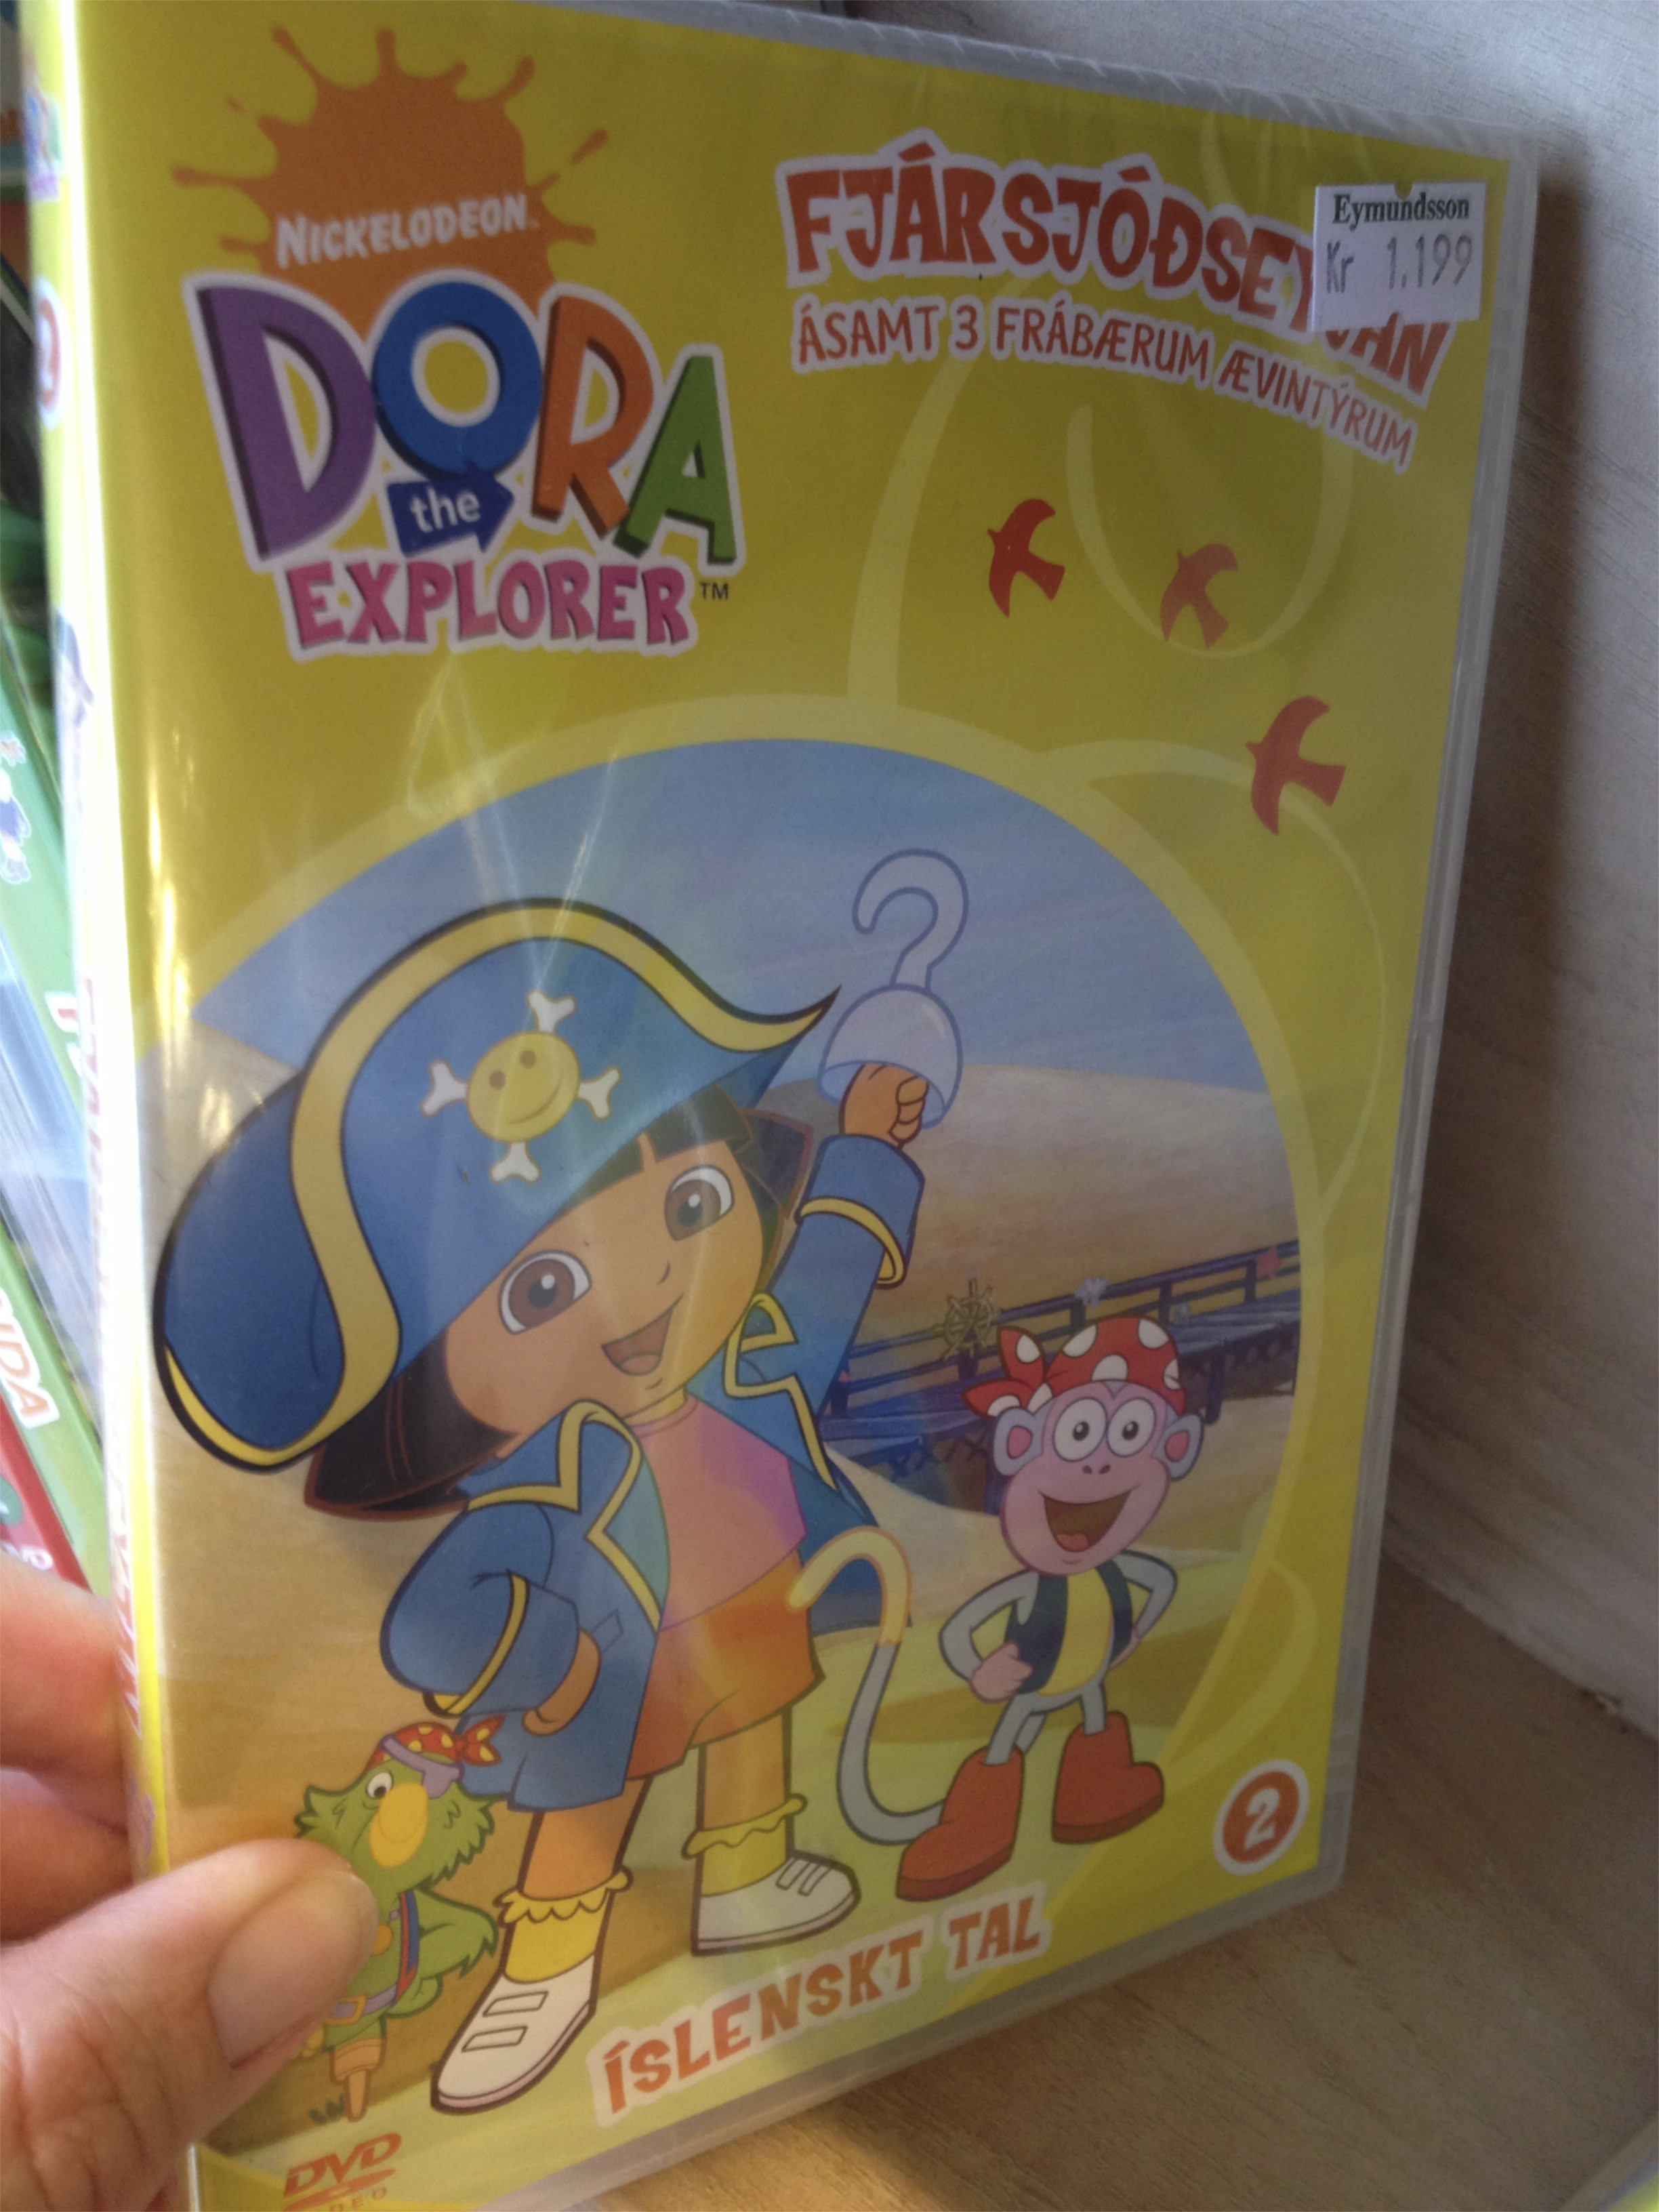 Dora and I had exploring in common.  I guess she's been here, too.